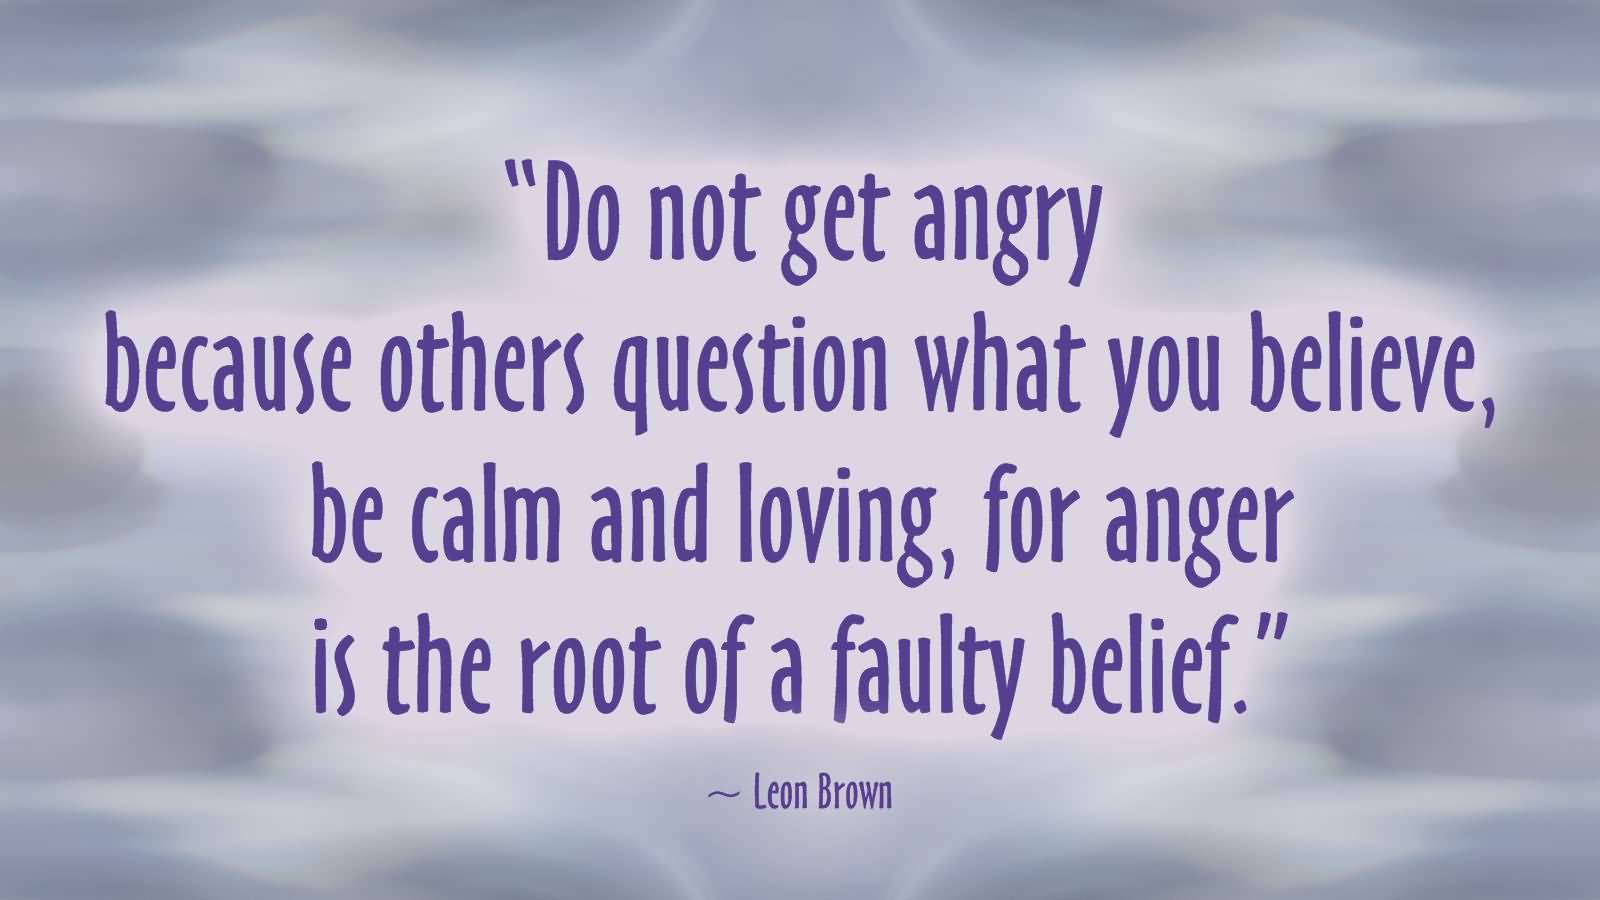 Do not get angry because others question what you believe, be calm and loving, for anger is the root of a faulty belief